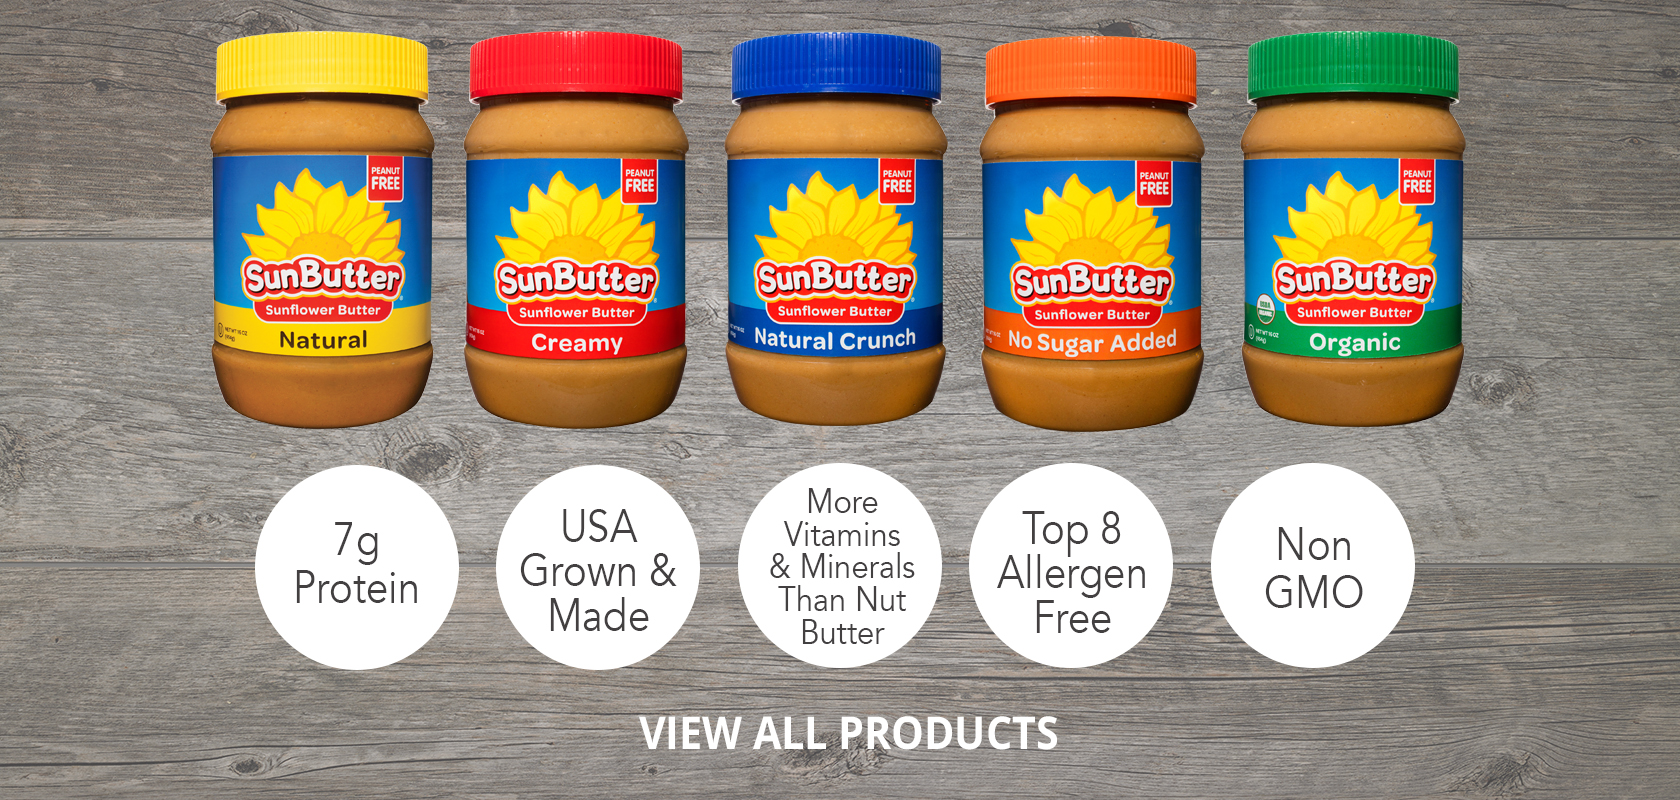 SunButter Products